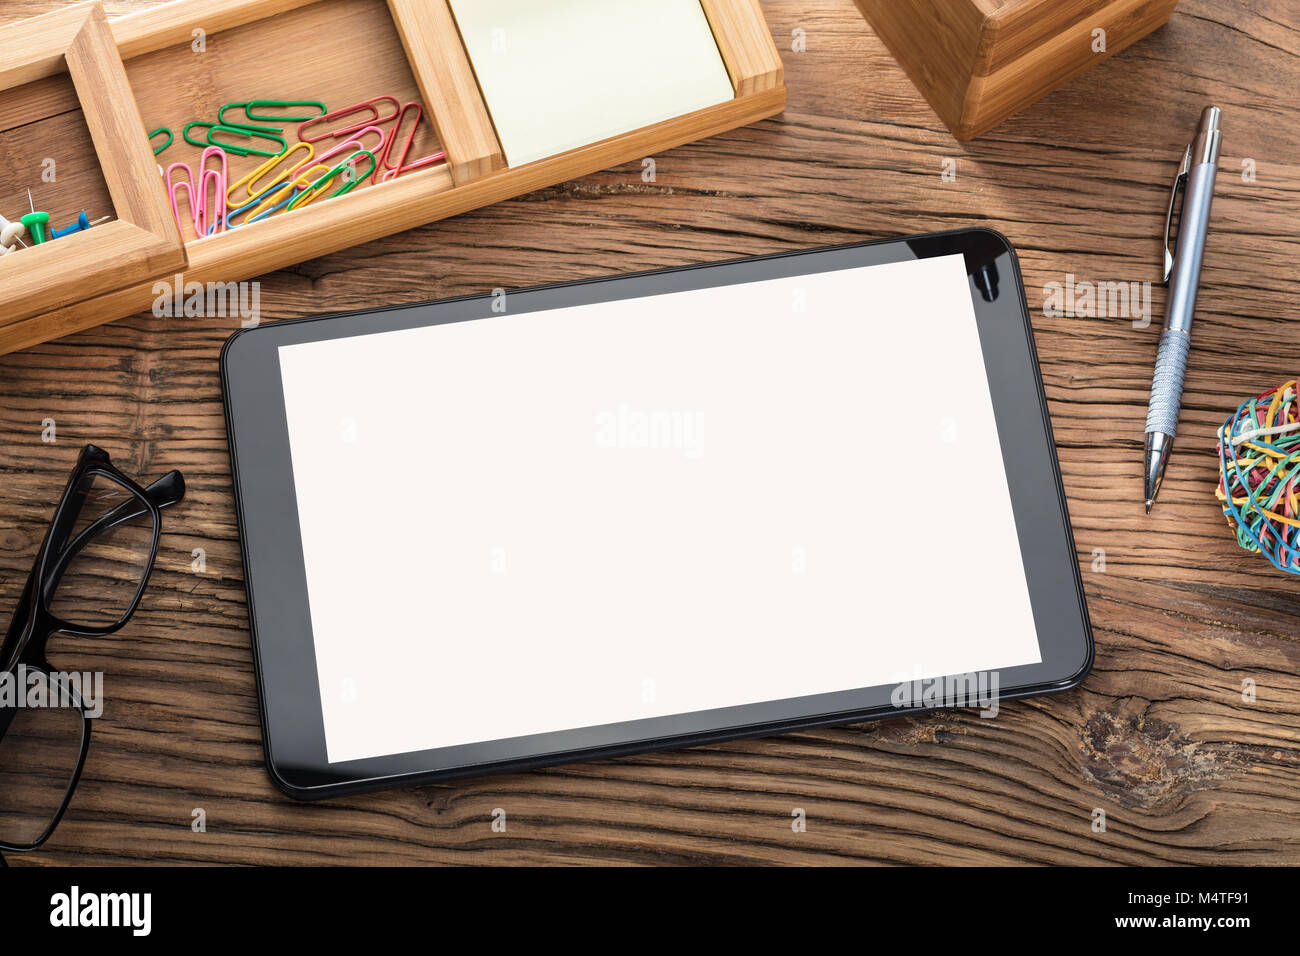 Blank Screen Digital Tablet On Wooden Table With Office Supplies - Stock Image